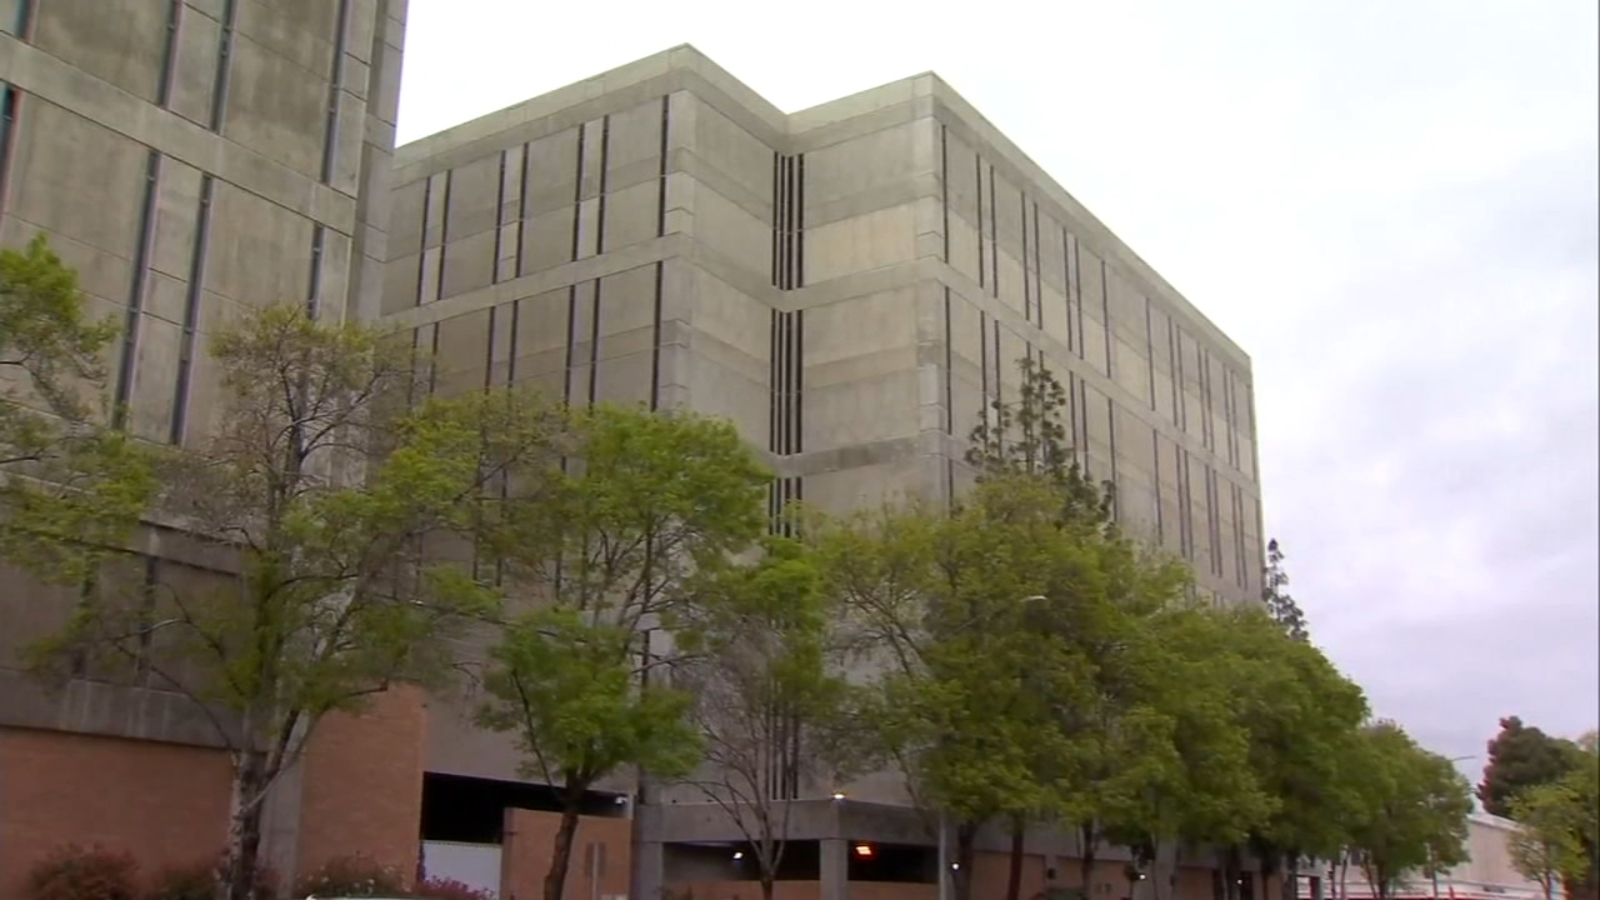 Man who went through booking process at Fresno County Jail tests positive for COVID-19 -TV